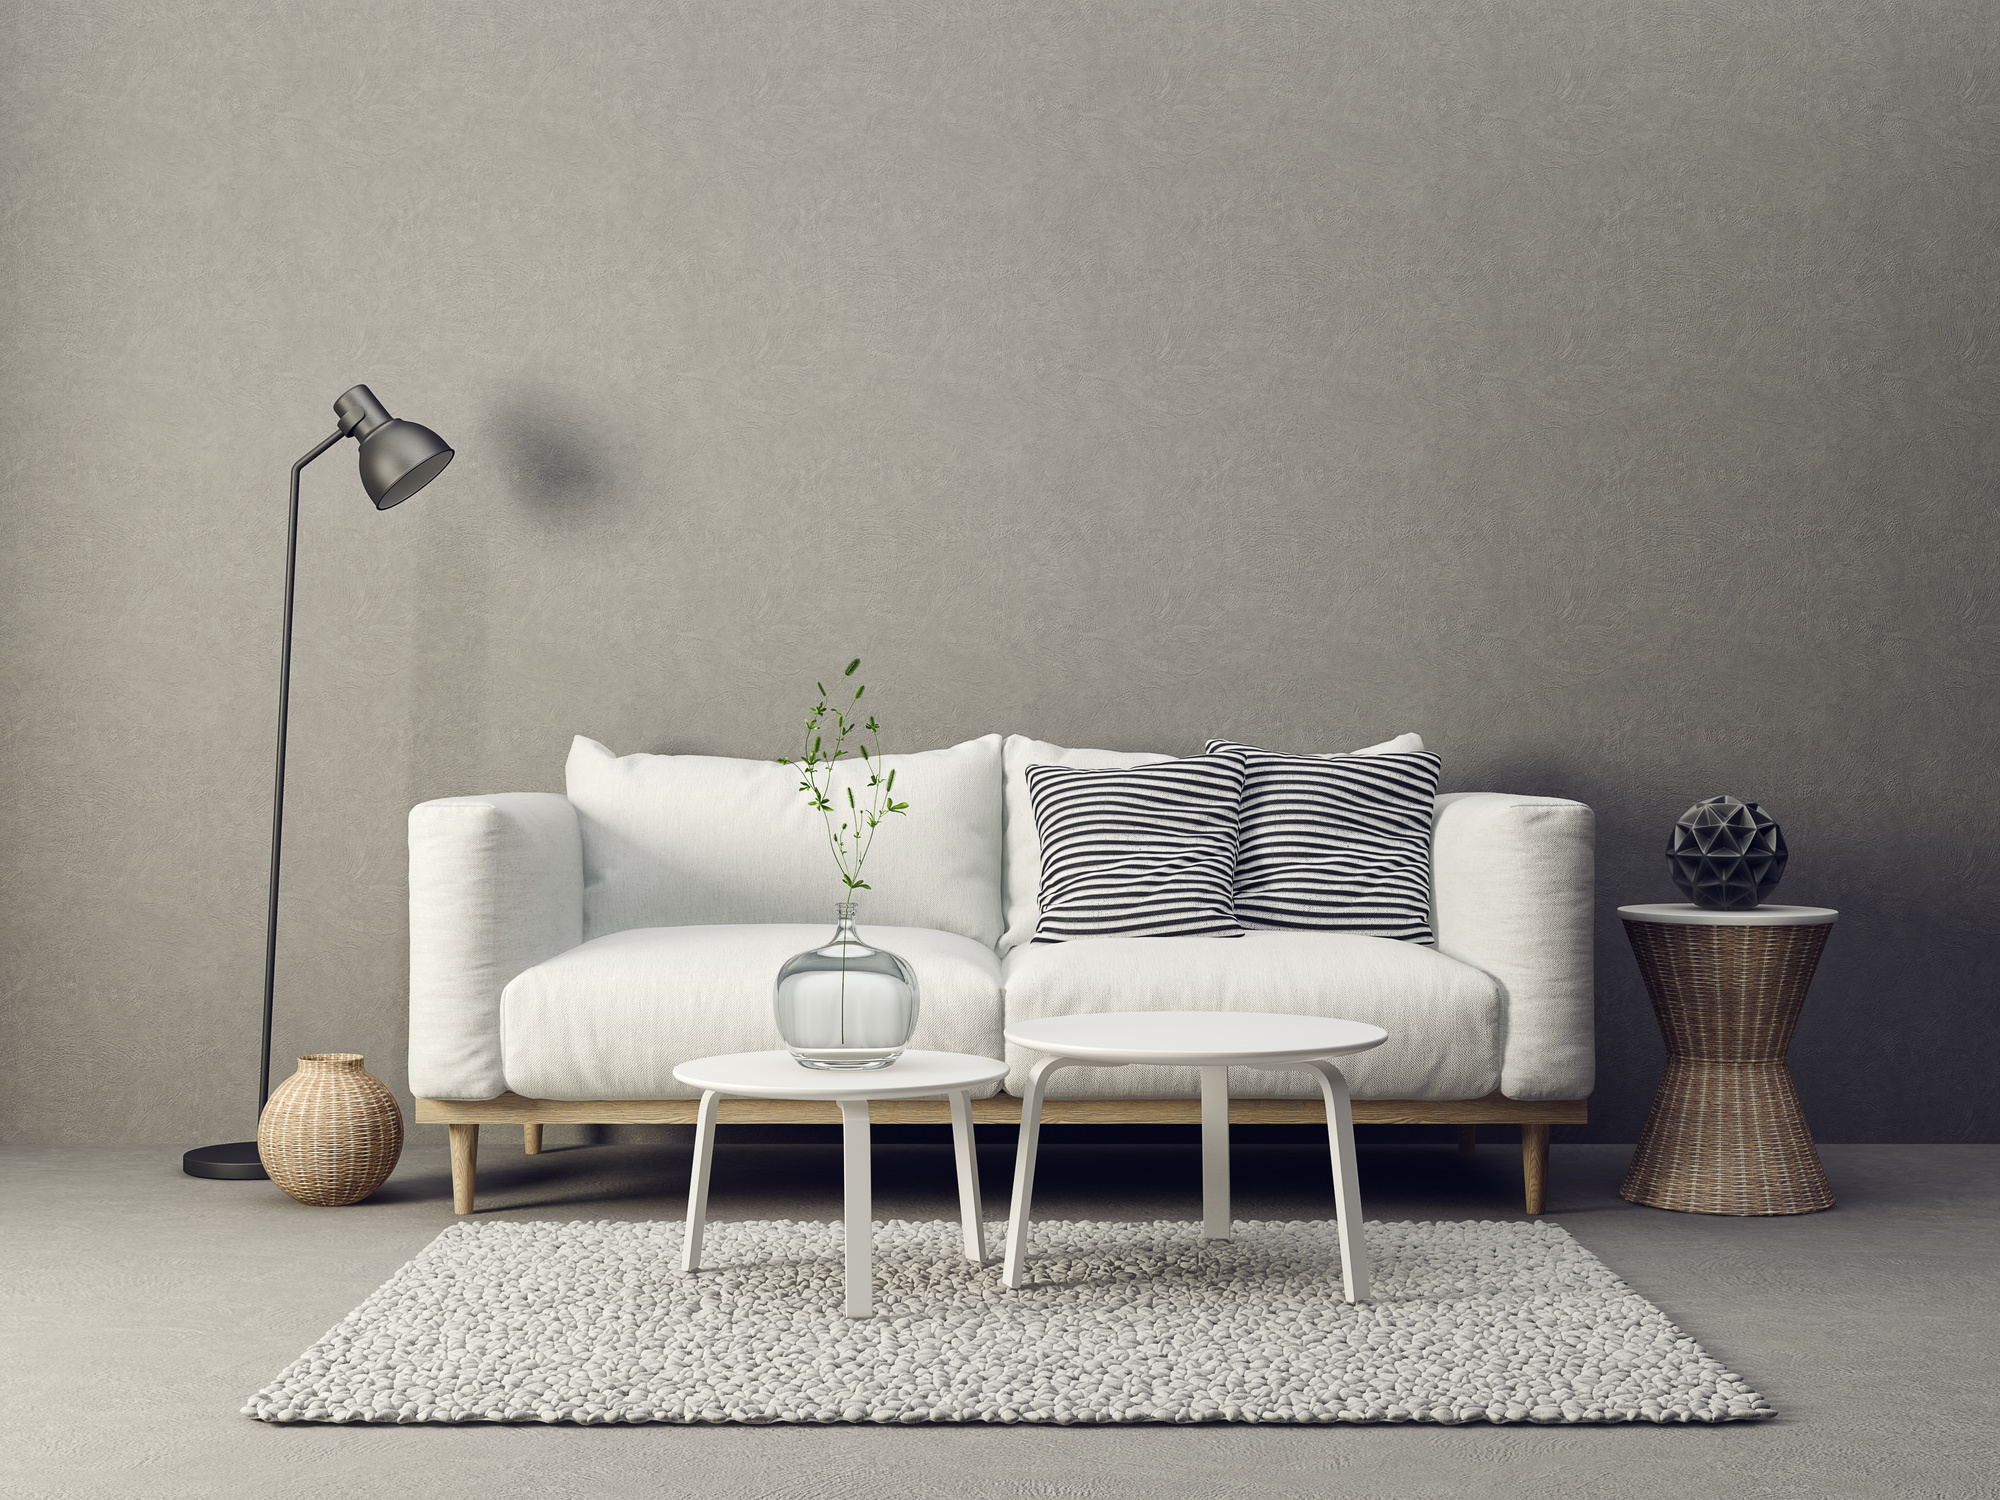 6 scandinavian interior design tips to add nordic flair to your home